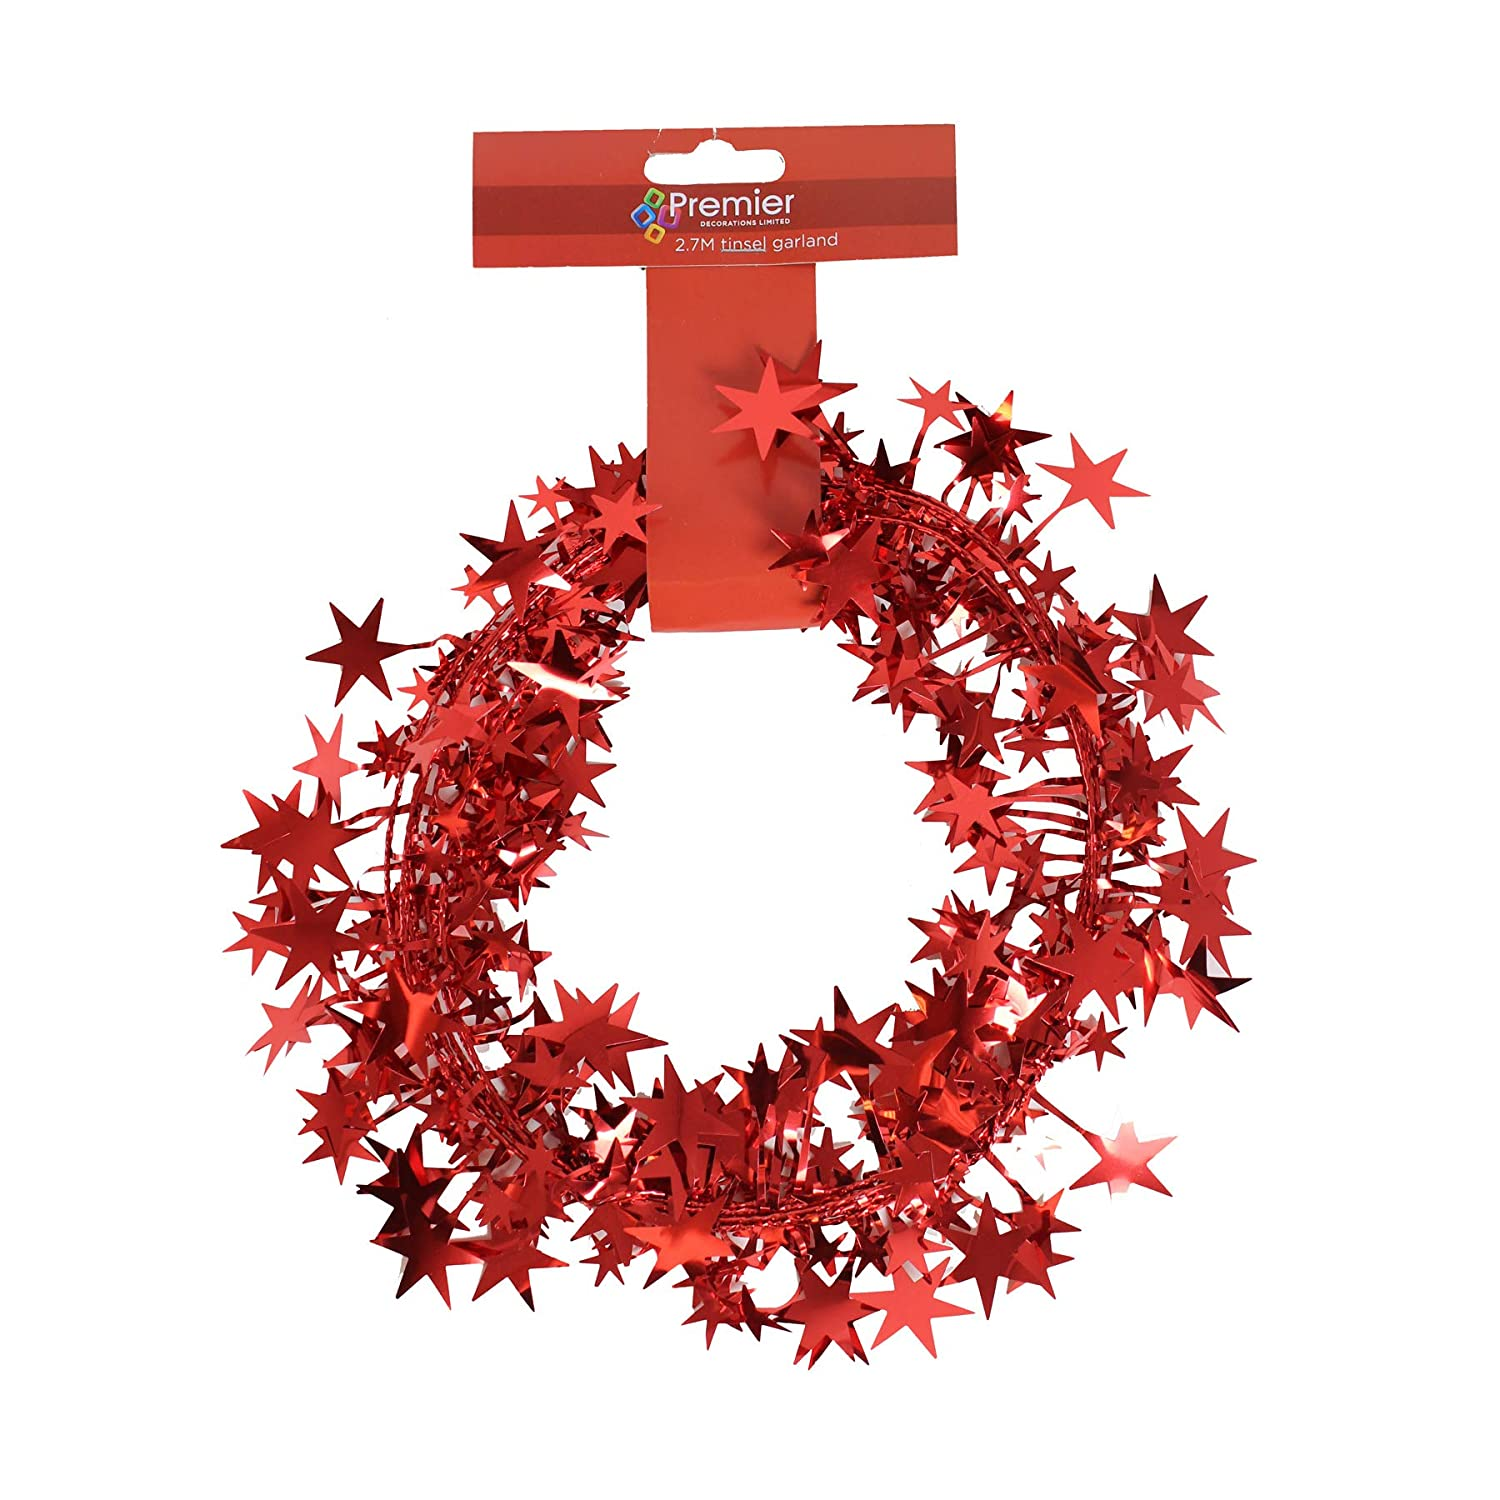 Premier Decorations Christmas 2.7 Metre Wired Shiny Foil Star Garland - Red